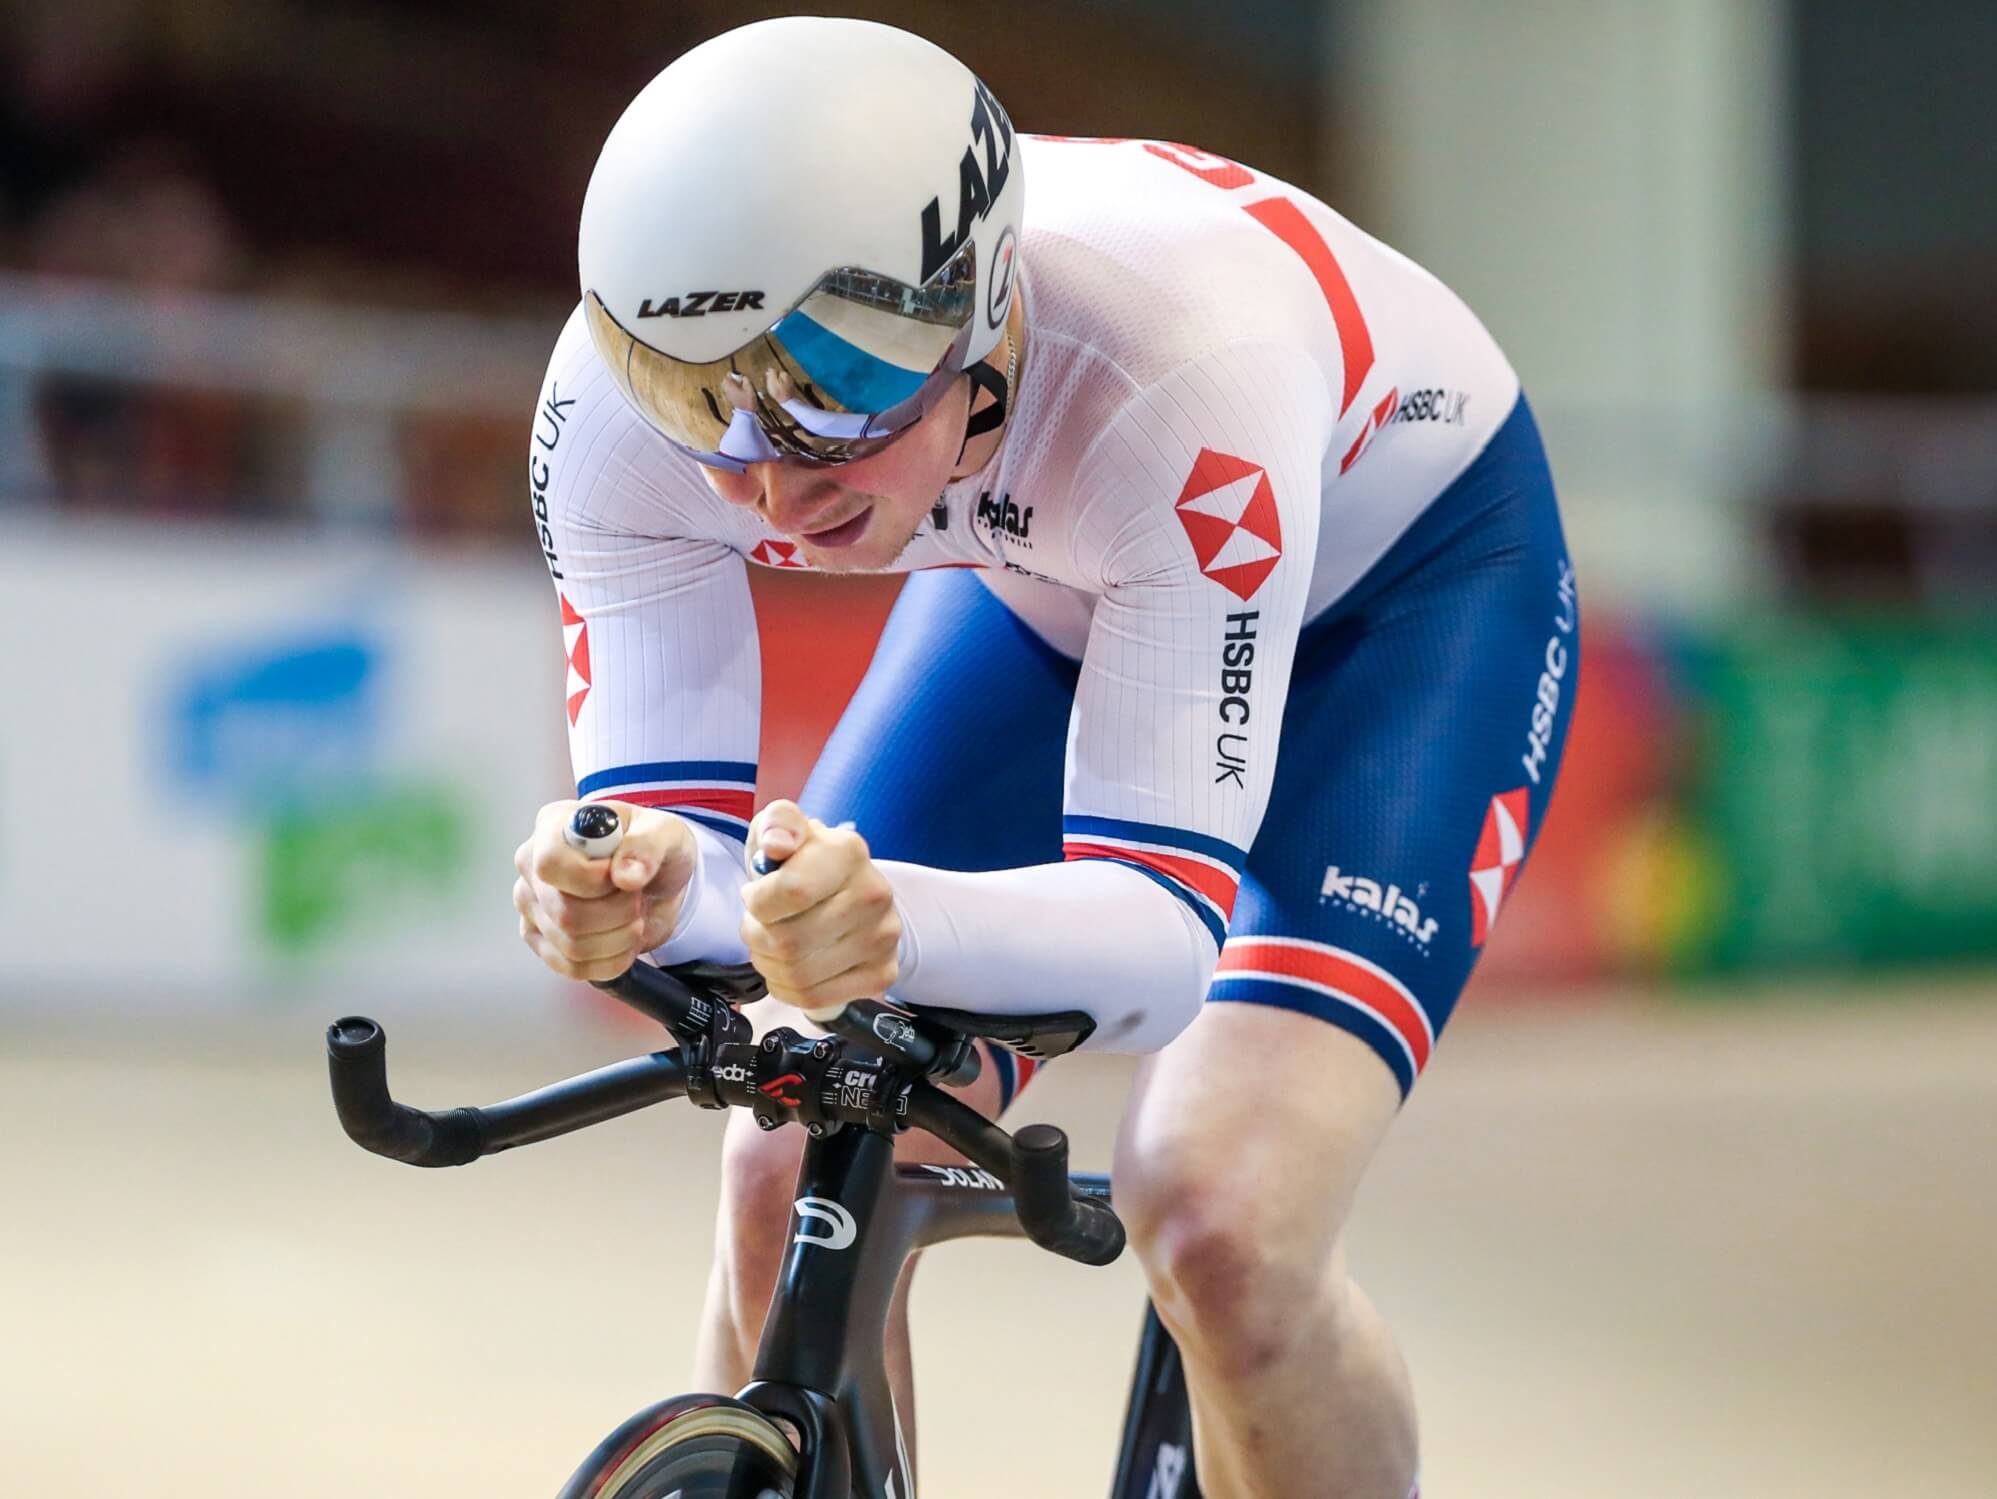 Cyclist Dan Cooper in competition for Great Britain